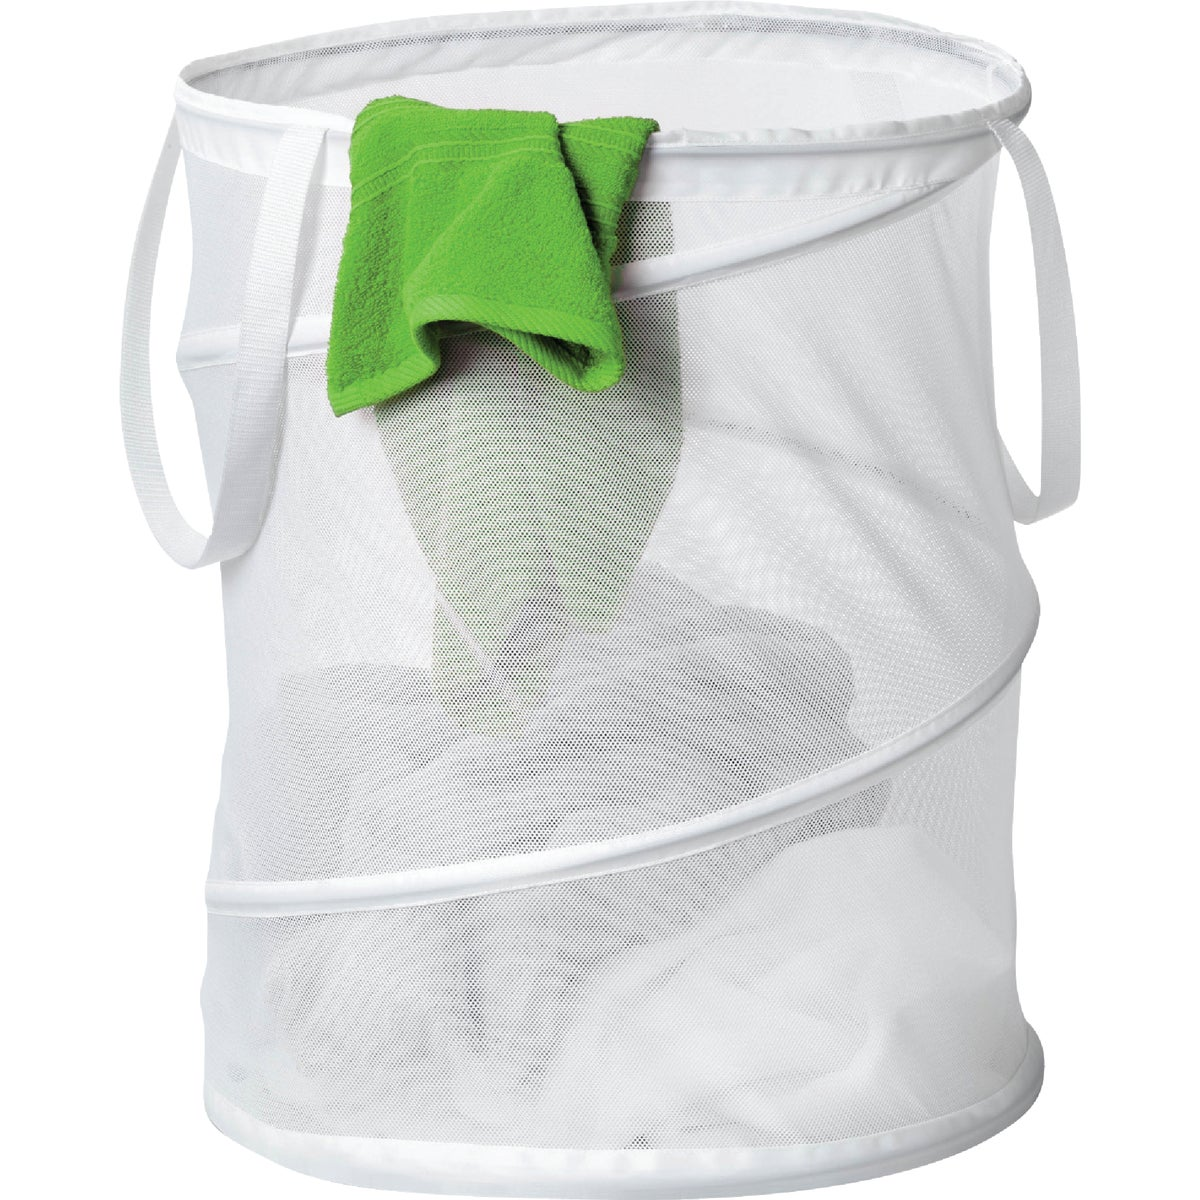 MED WHT MESH HAMPER - HMP-01262 by Honey Can Do